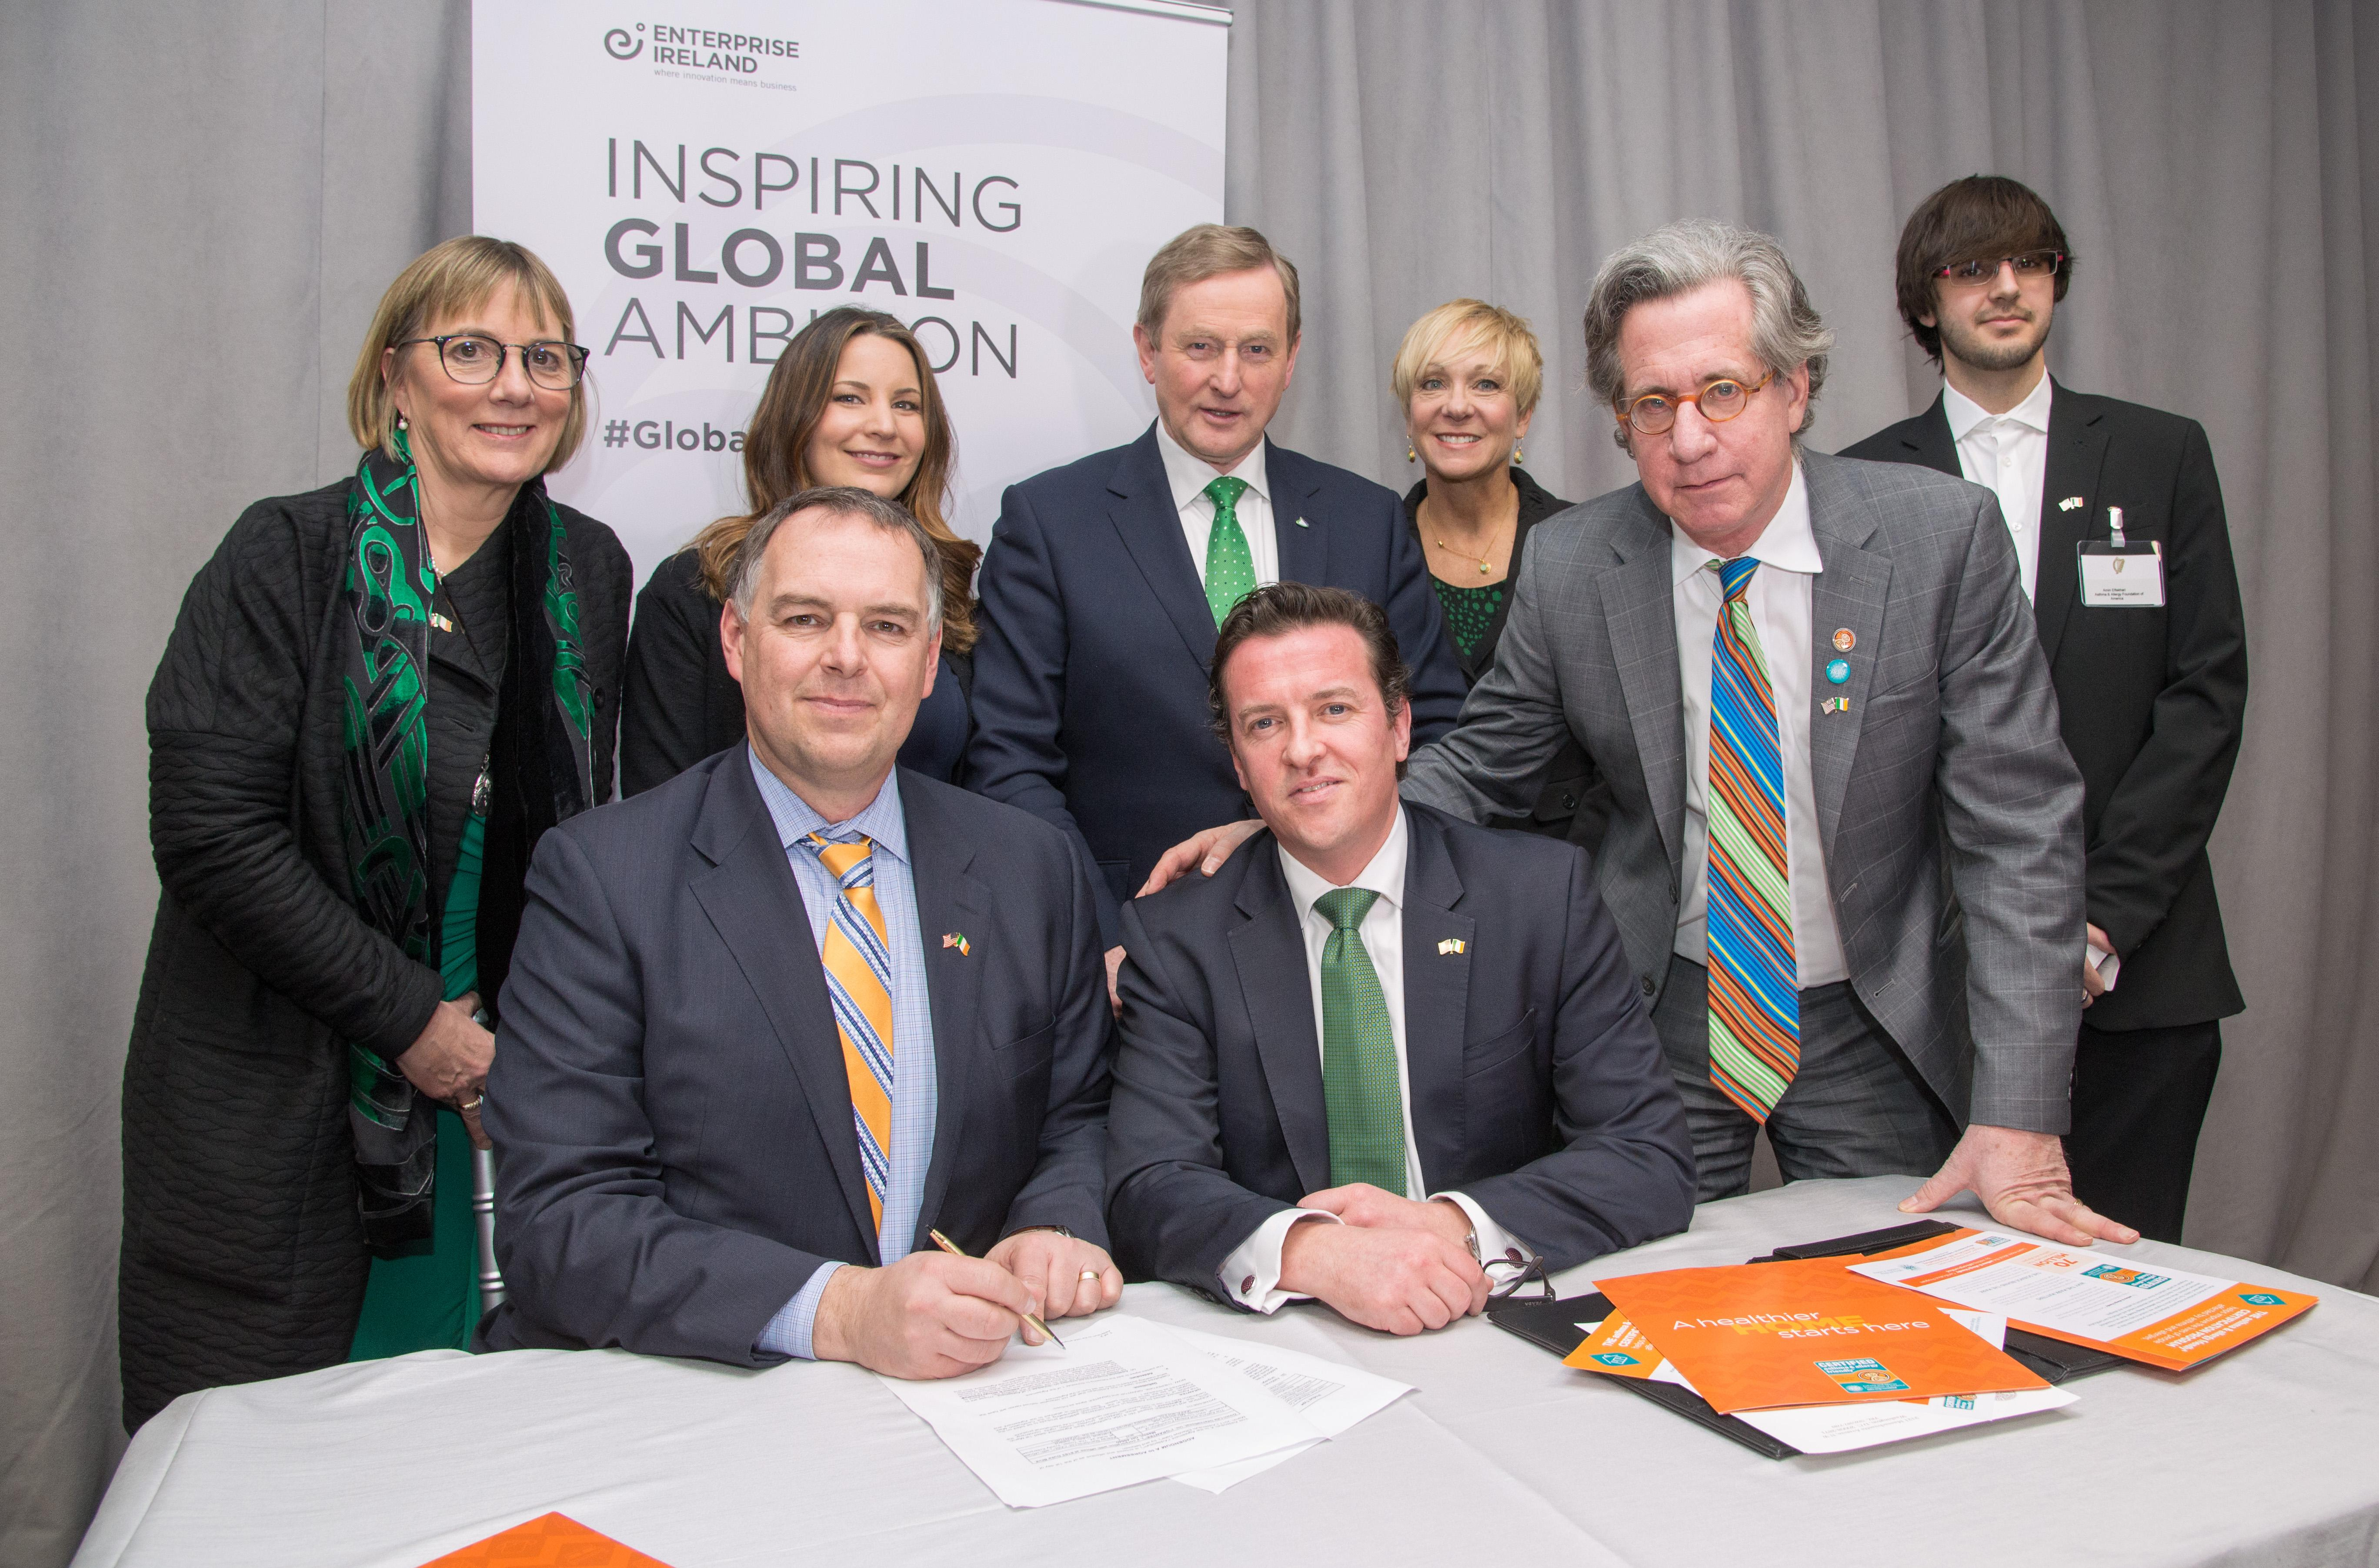 Taoiseach Enda Kenny, John McKeon, Julie Sinnamon, Dr. Cary Sennett, Julian Francis, Science Foundation Ireland, United States Institute of Peace, Owens Corning